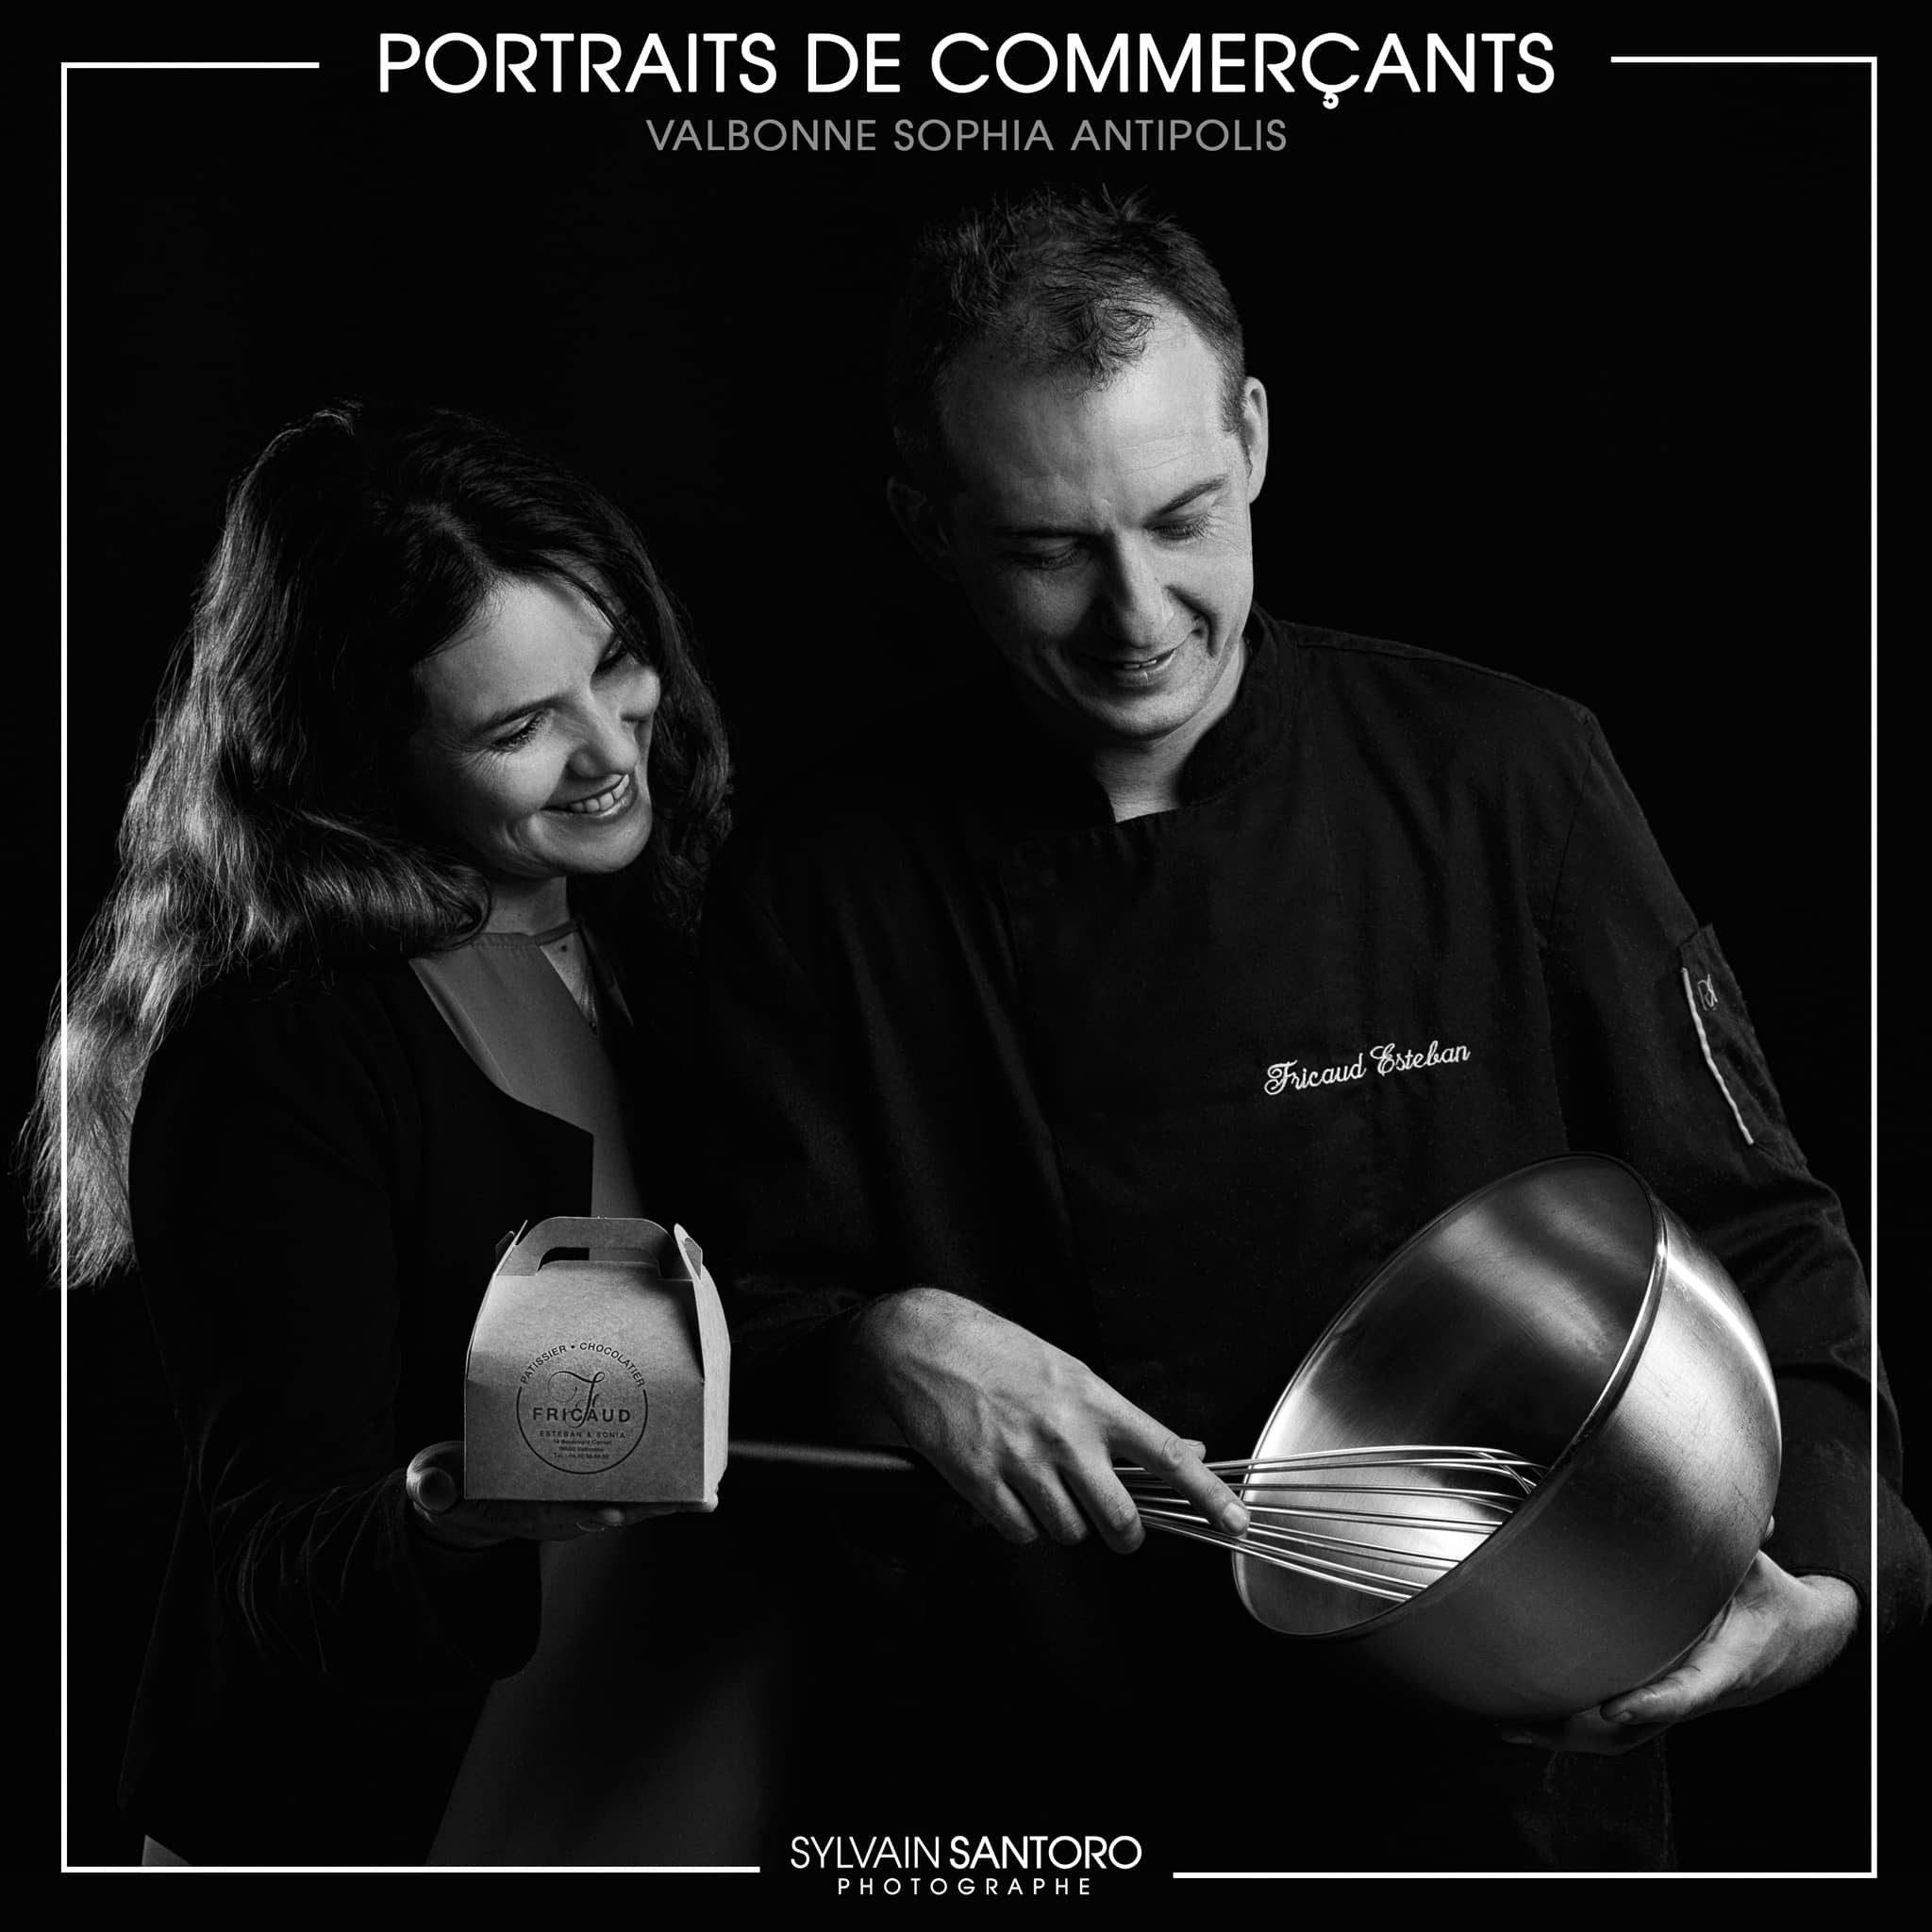 Portraits de Commerçants : Patisserie Fricaud